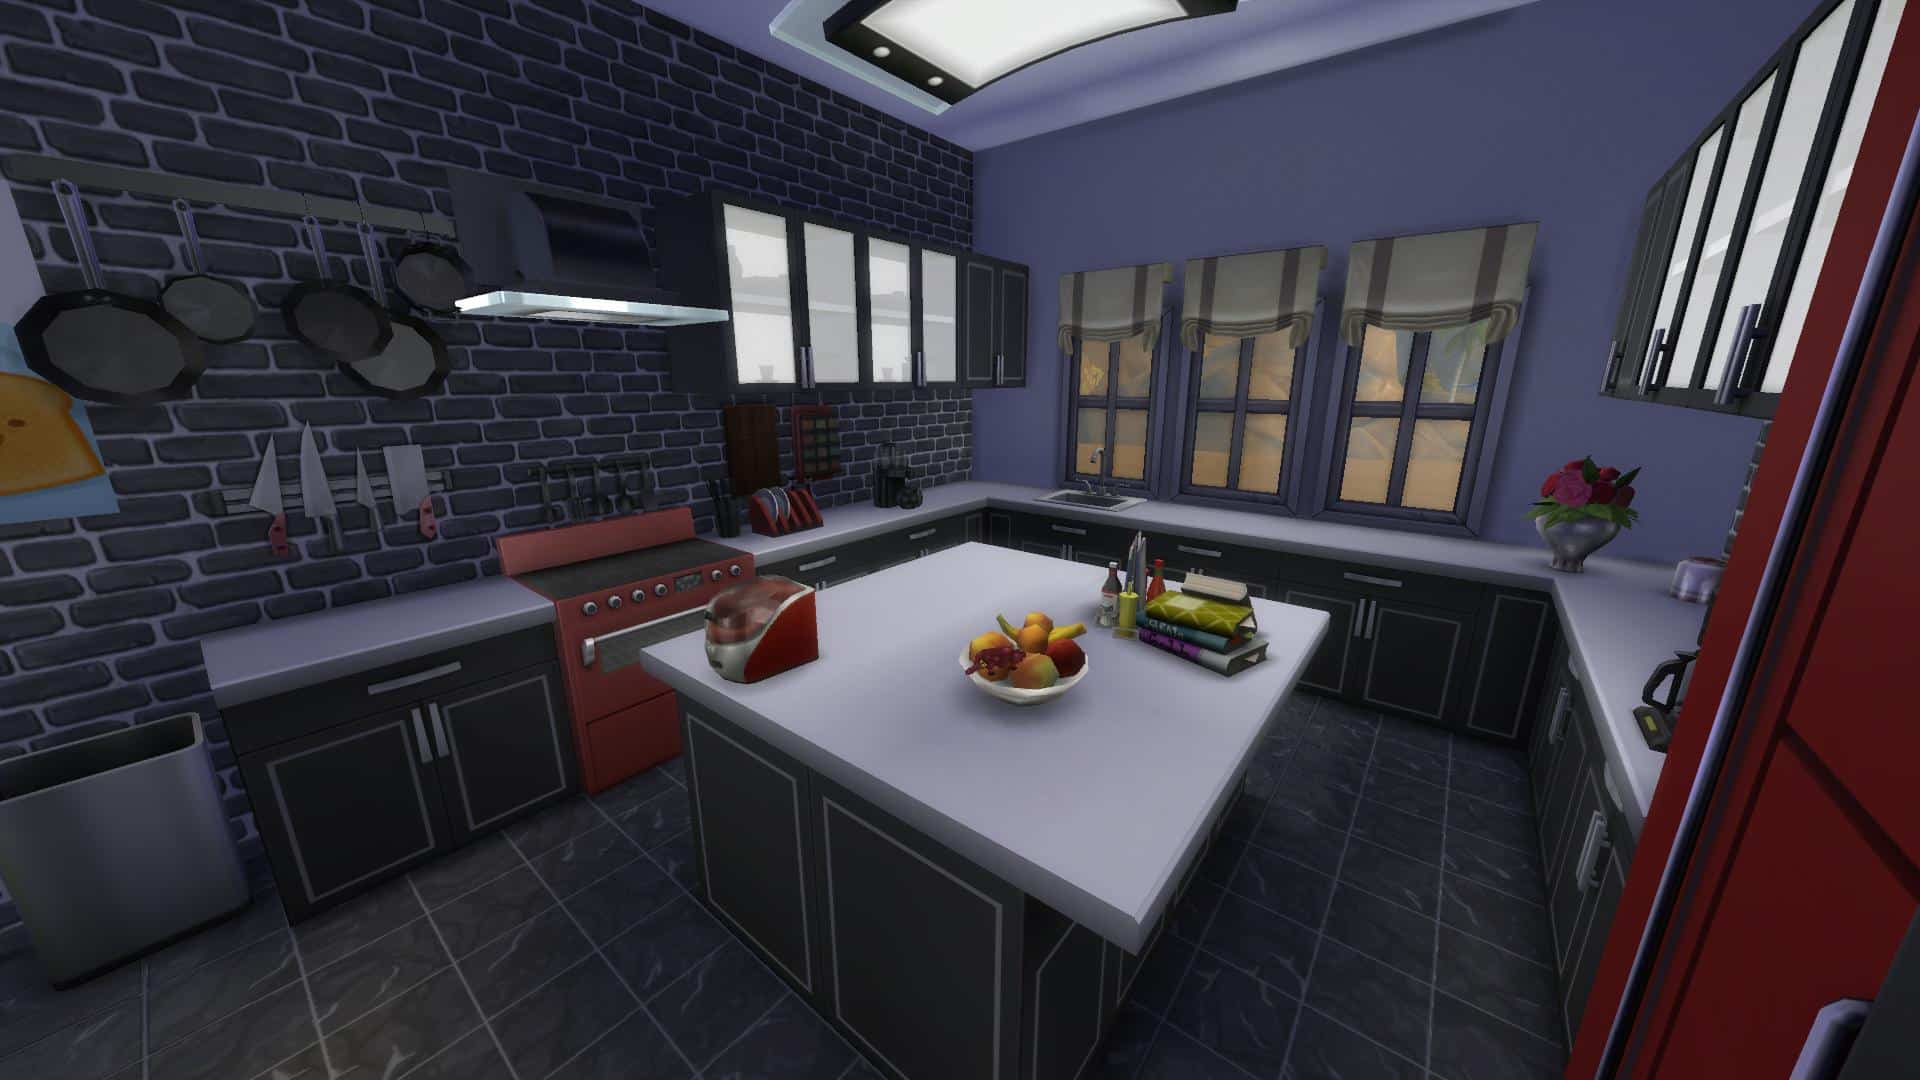 The Sims 4 Design Guide Modern Kitchen Cc